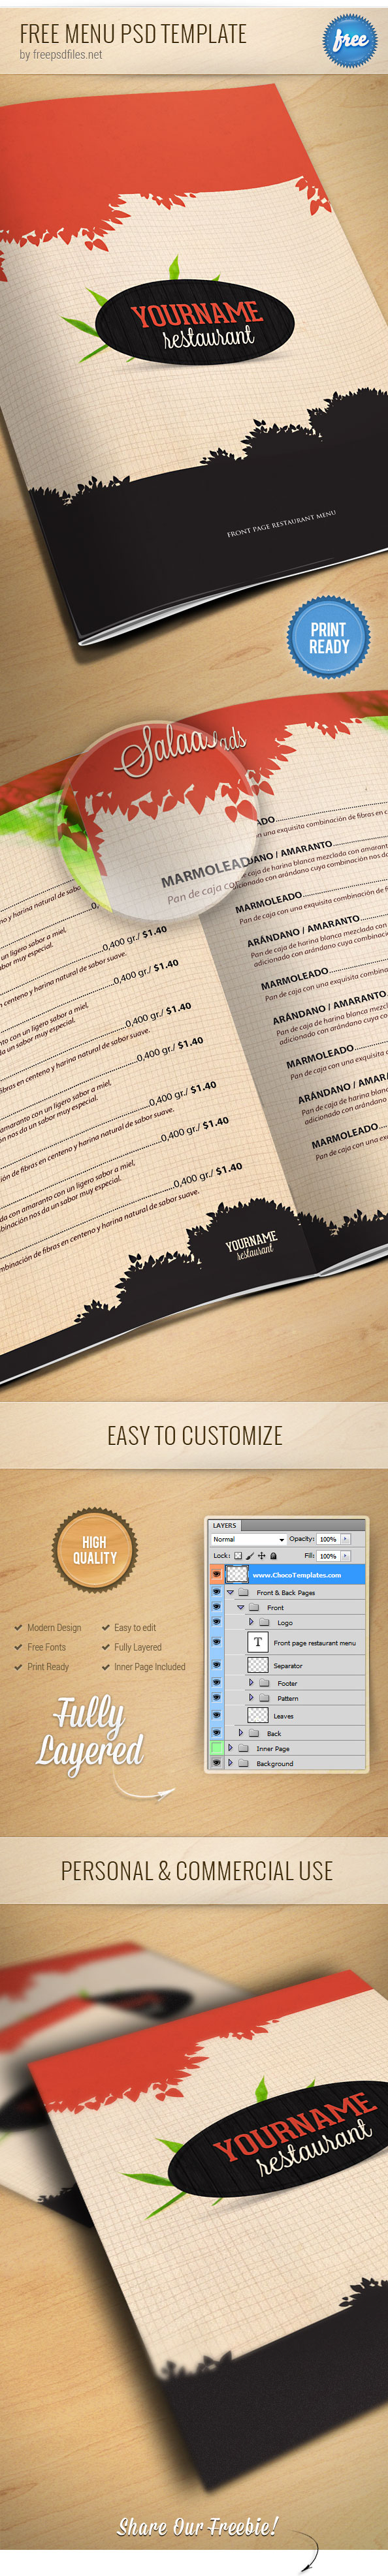 Restaurant Menu PSD Template Preview